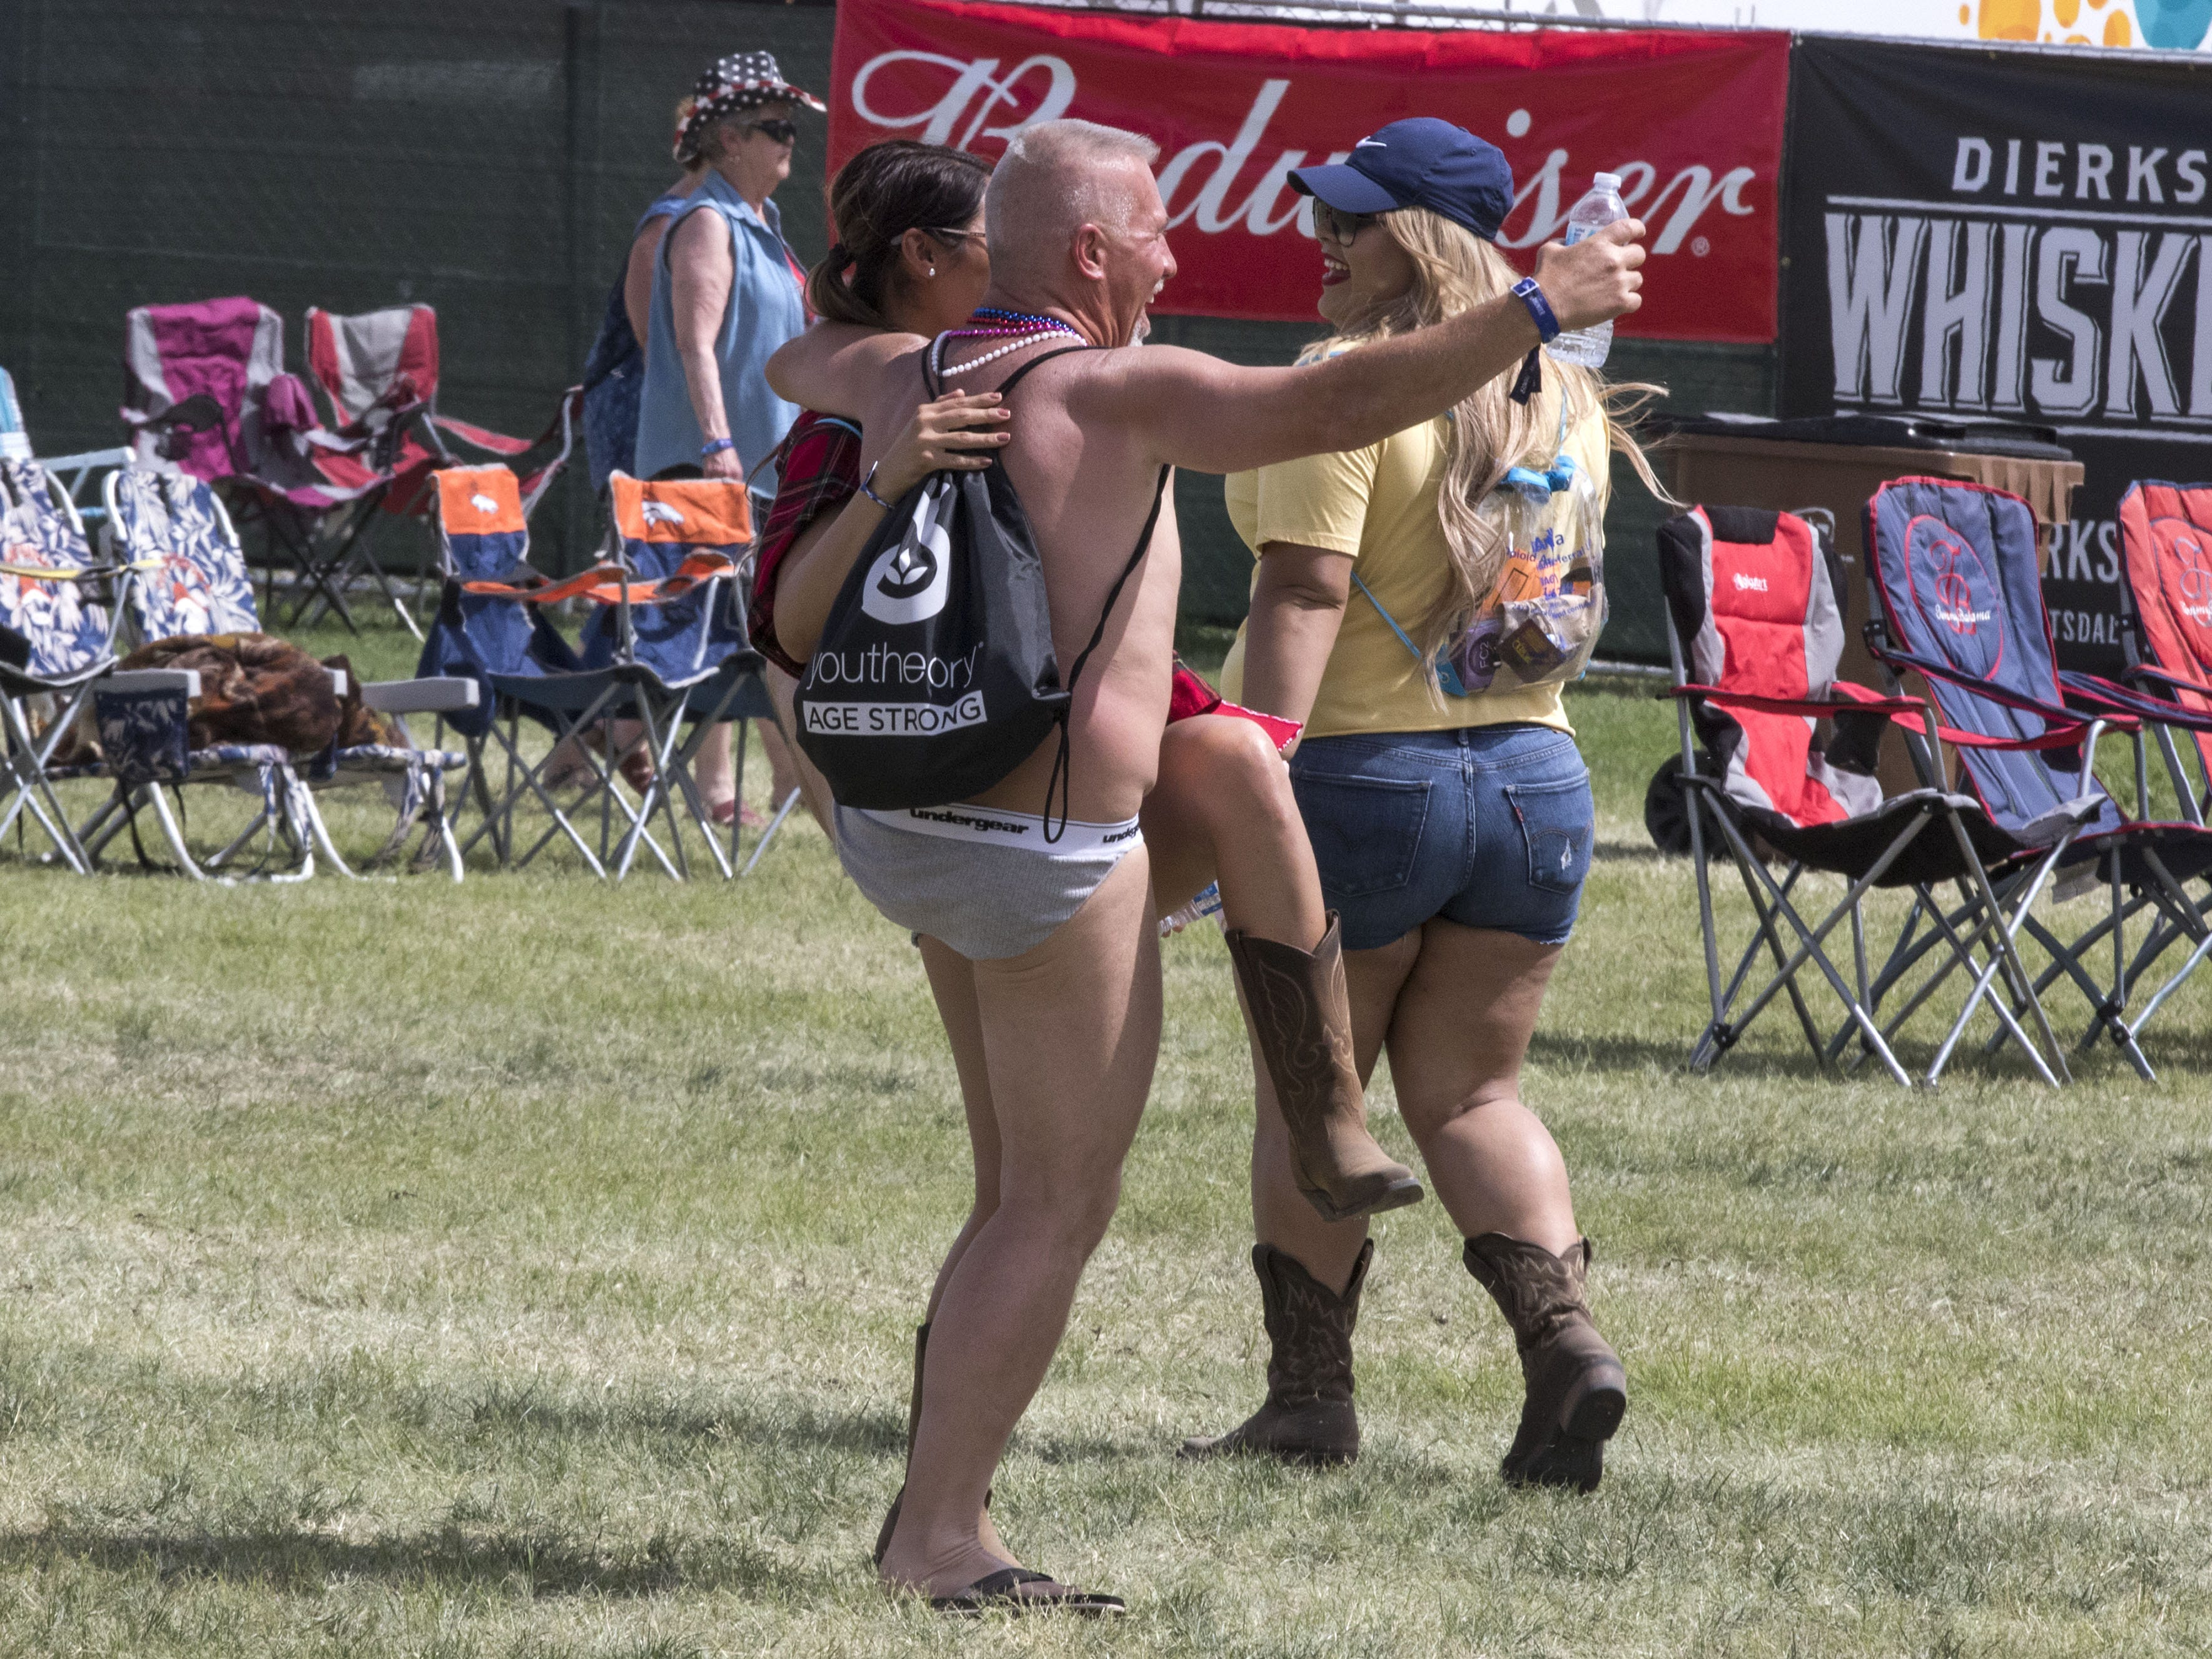 Donning only bikini briefs, flip flops and a backpack, John Schmidt of Mesa laughs during Country Thunder Arizona Friday, April 12, 2019, in Florence, Ariz.